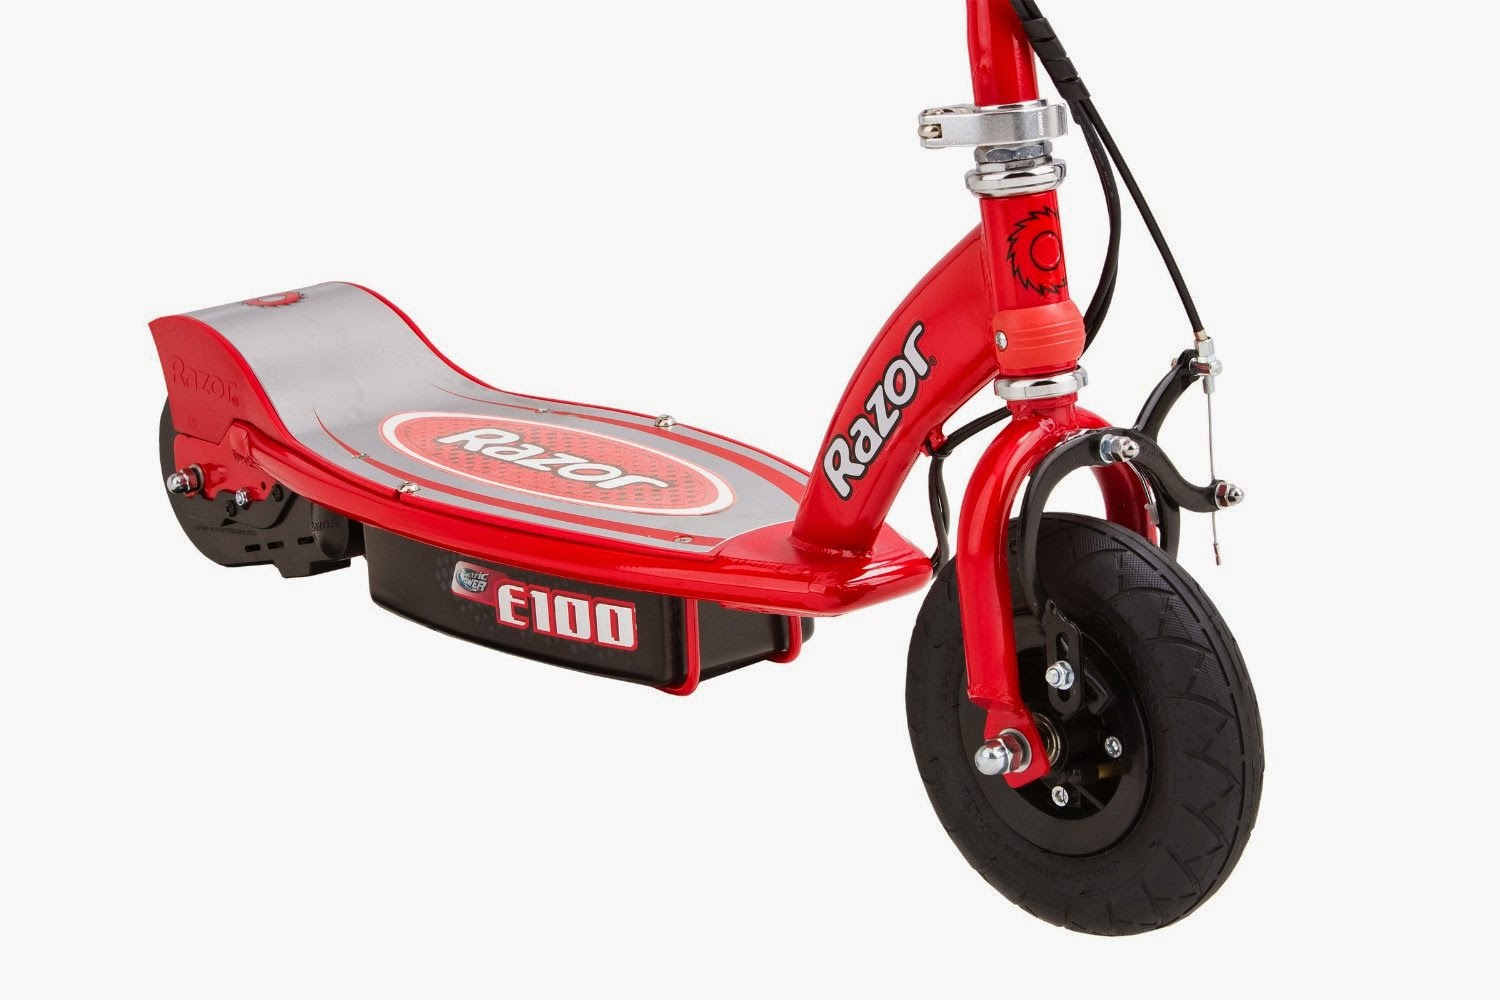 Razor E100 Electric Scooter Red Scooter